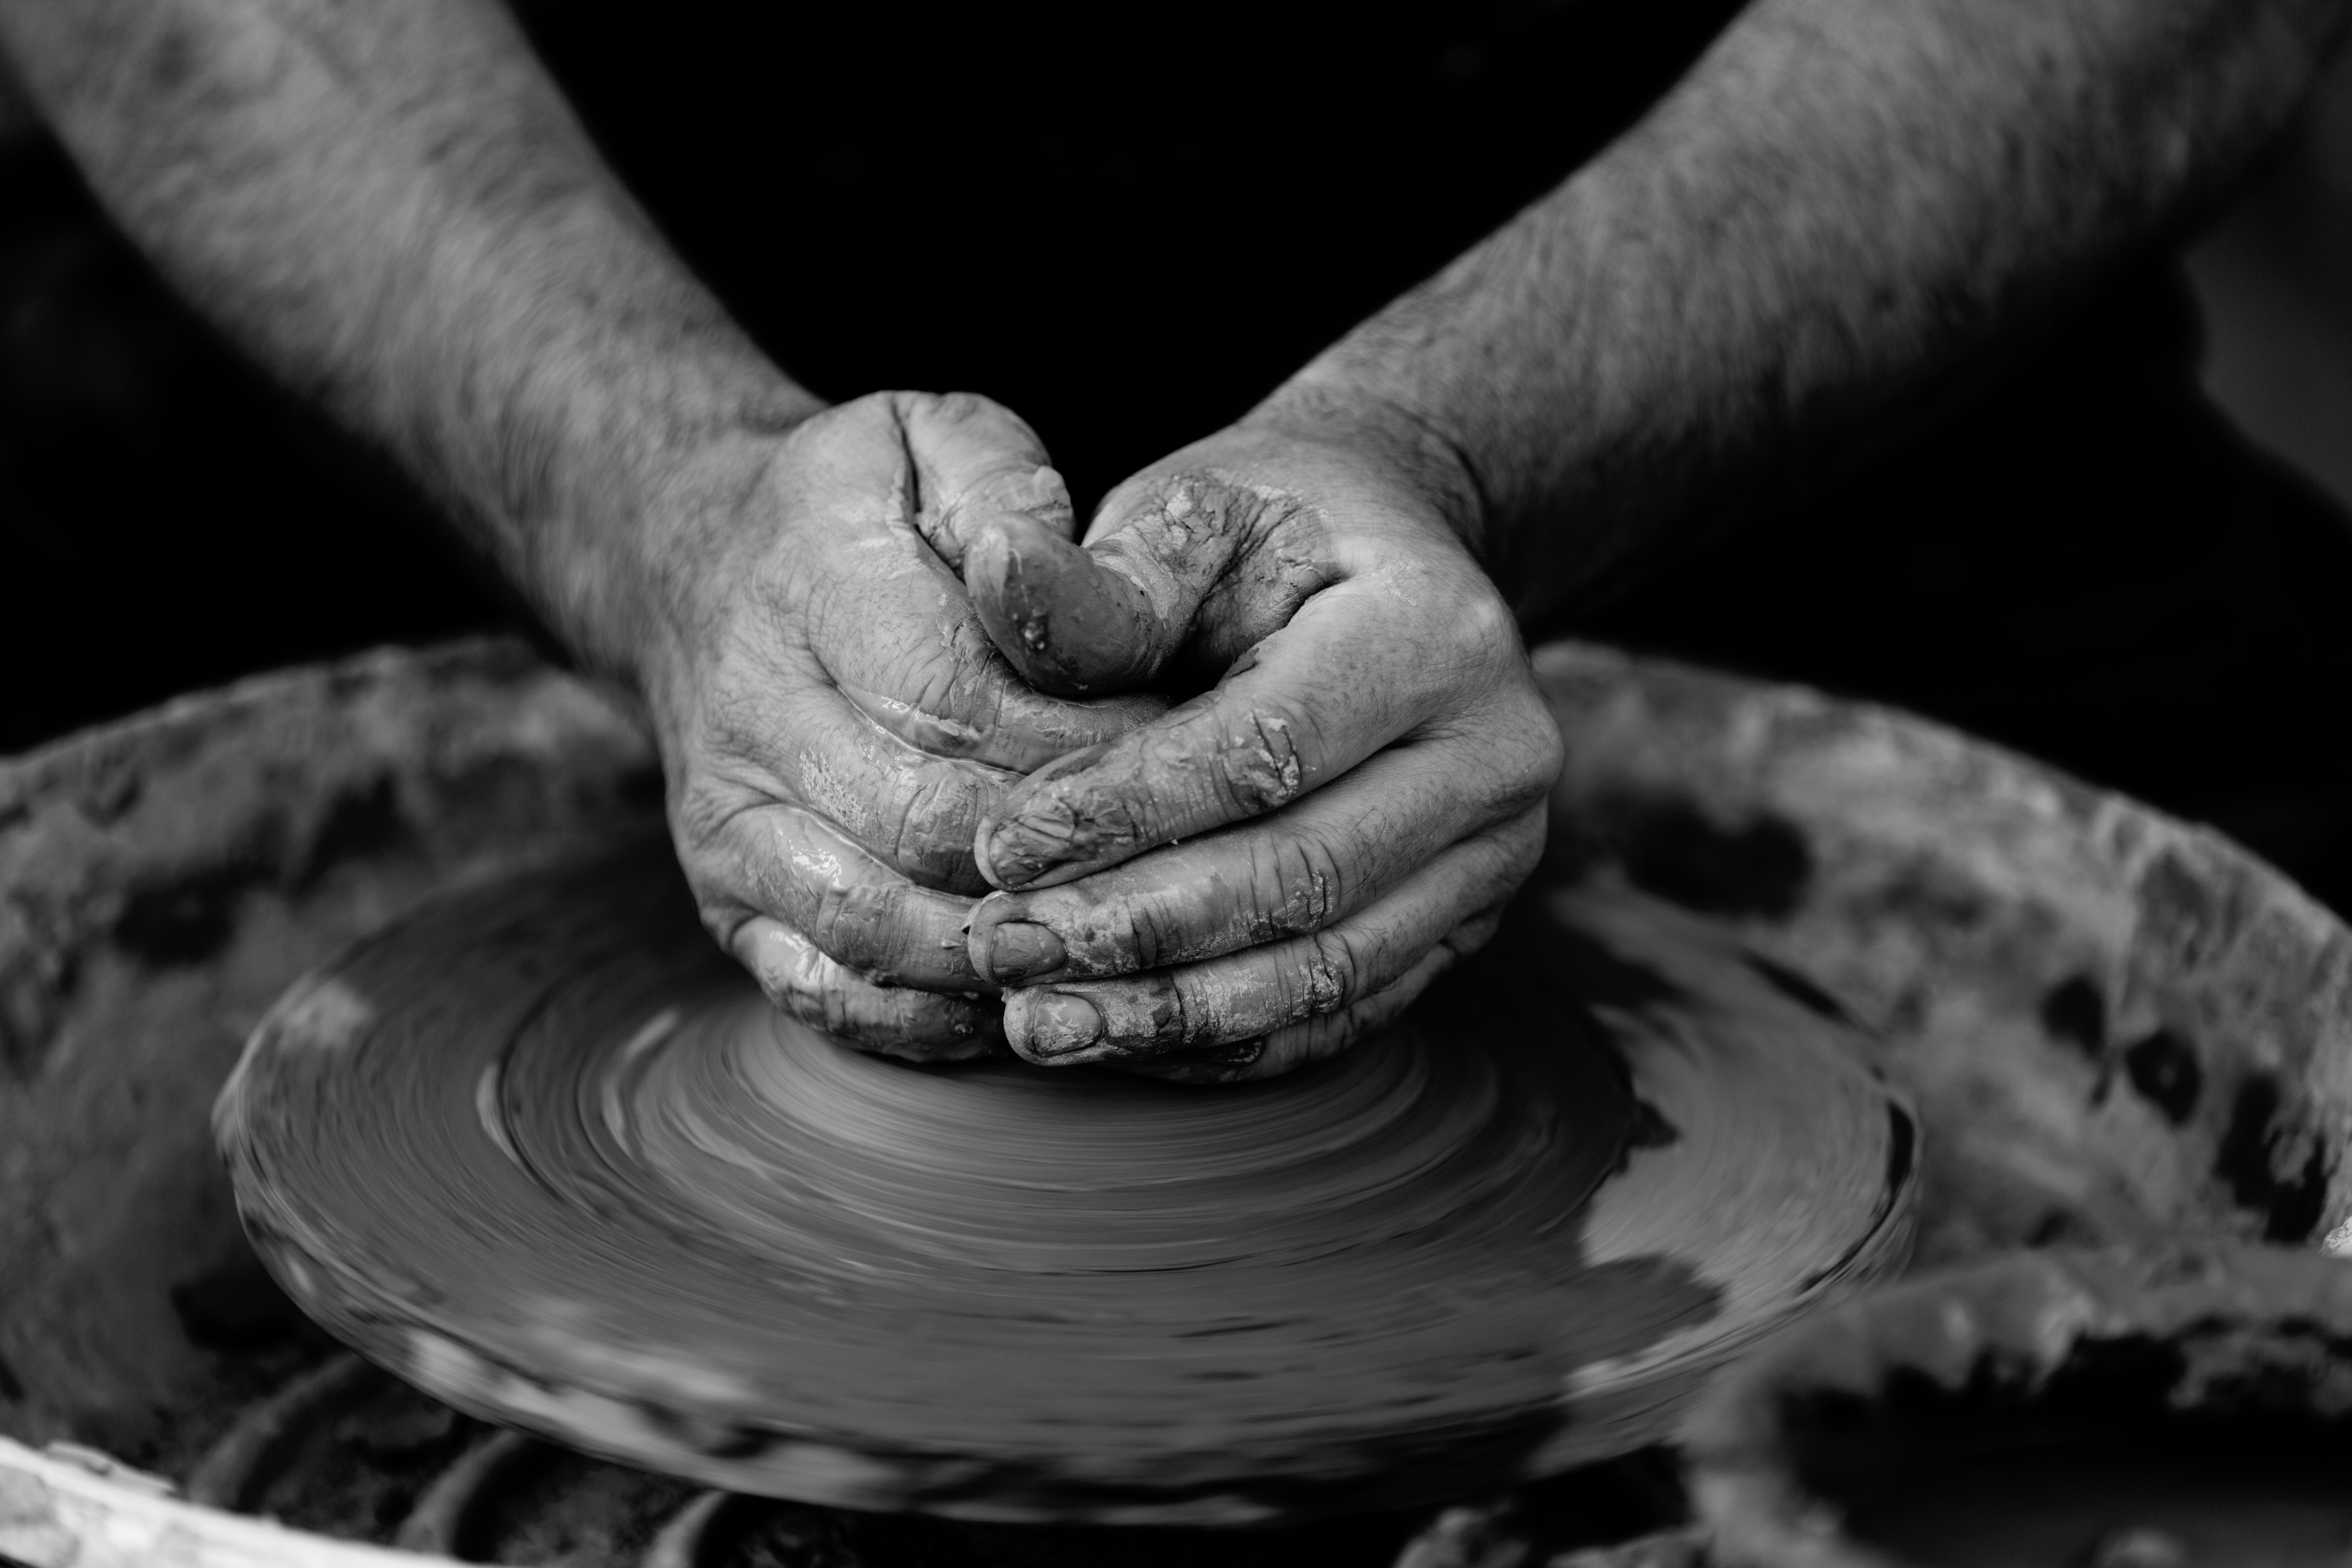 Black and white photo of potter molding clay with his hands on a spinning pottery wheel